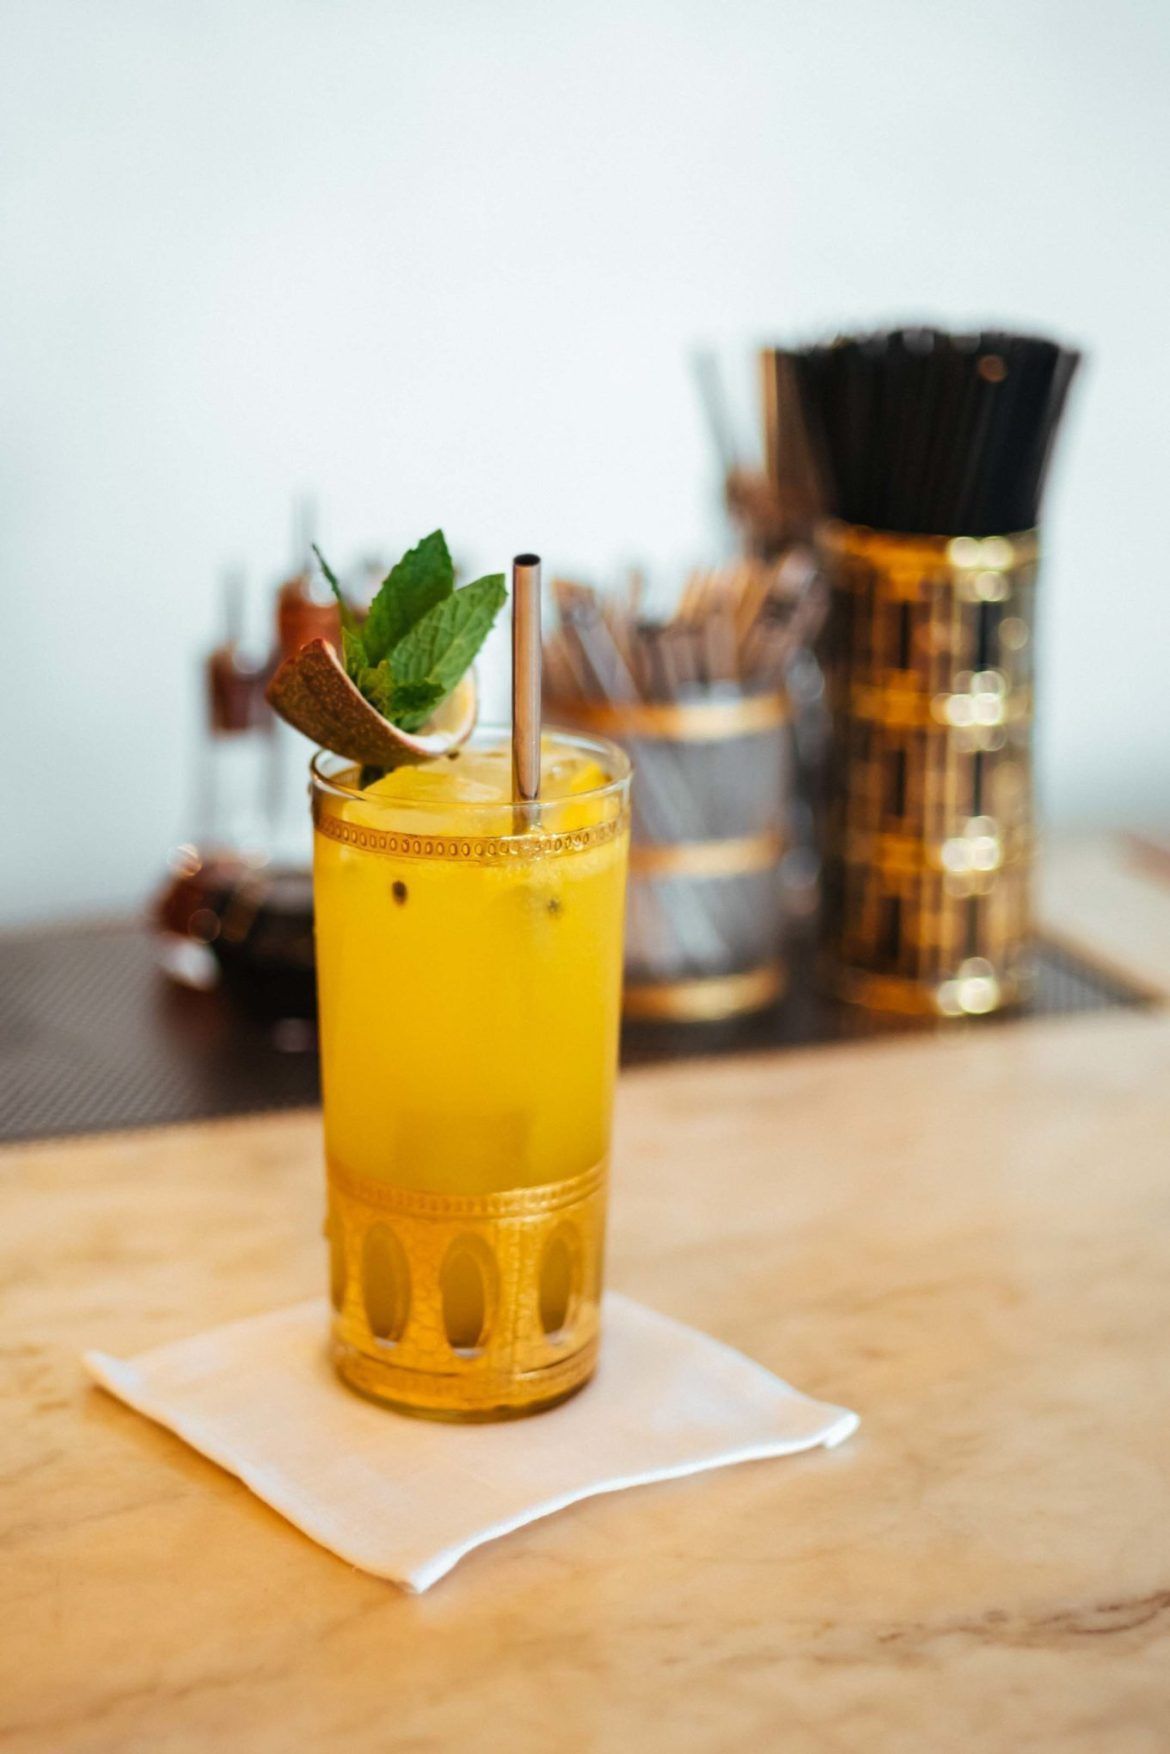 Order the best cocktails in Hollywood at the Bar at Gwenin Los Angeles, owned by Celebrity Chef Curtis Stone.